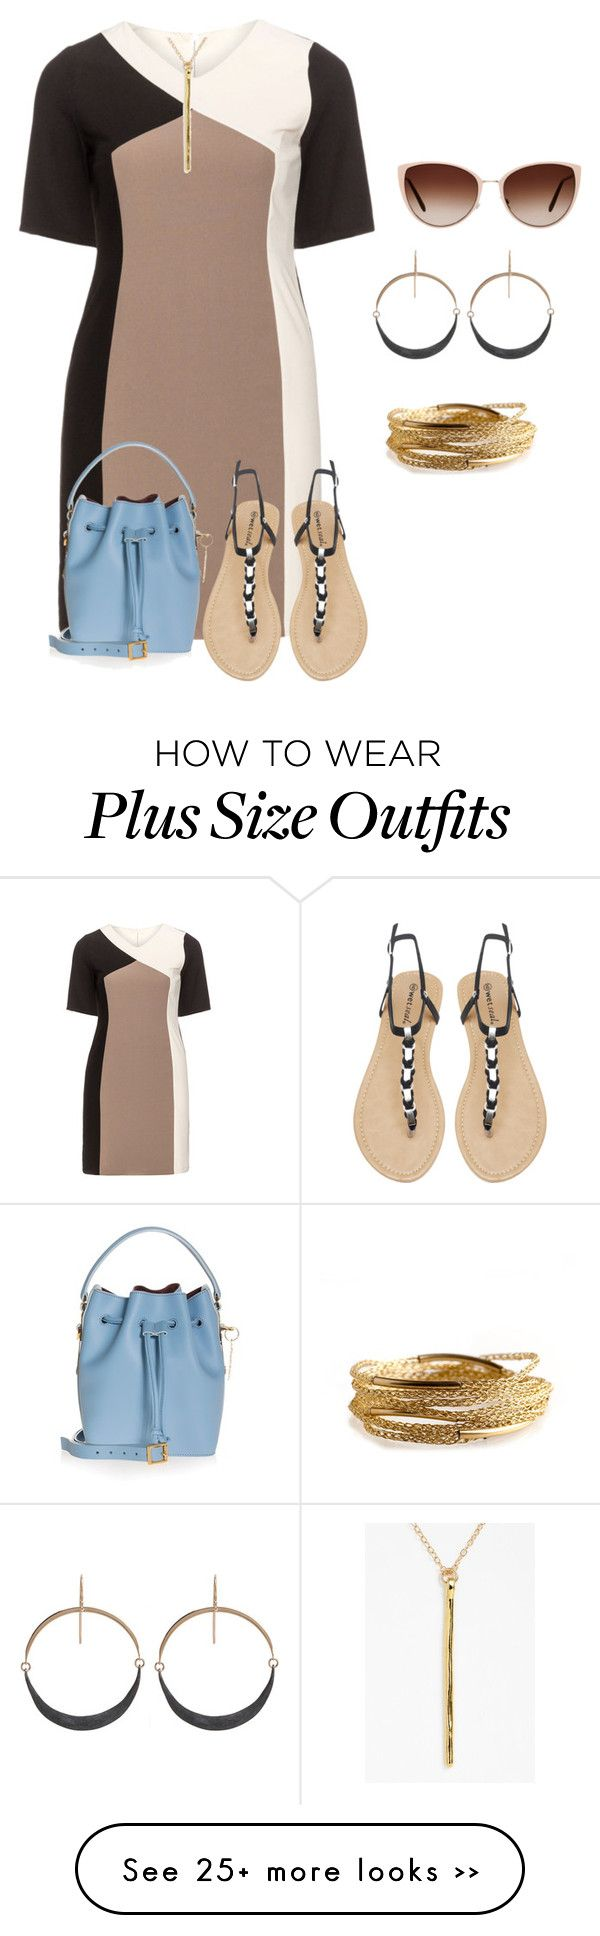 """""""plus size tuesday nails and shopping"""" by kristie-payne on Polyvore"""